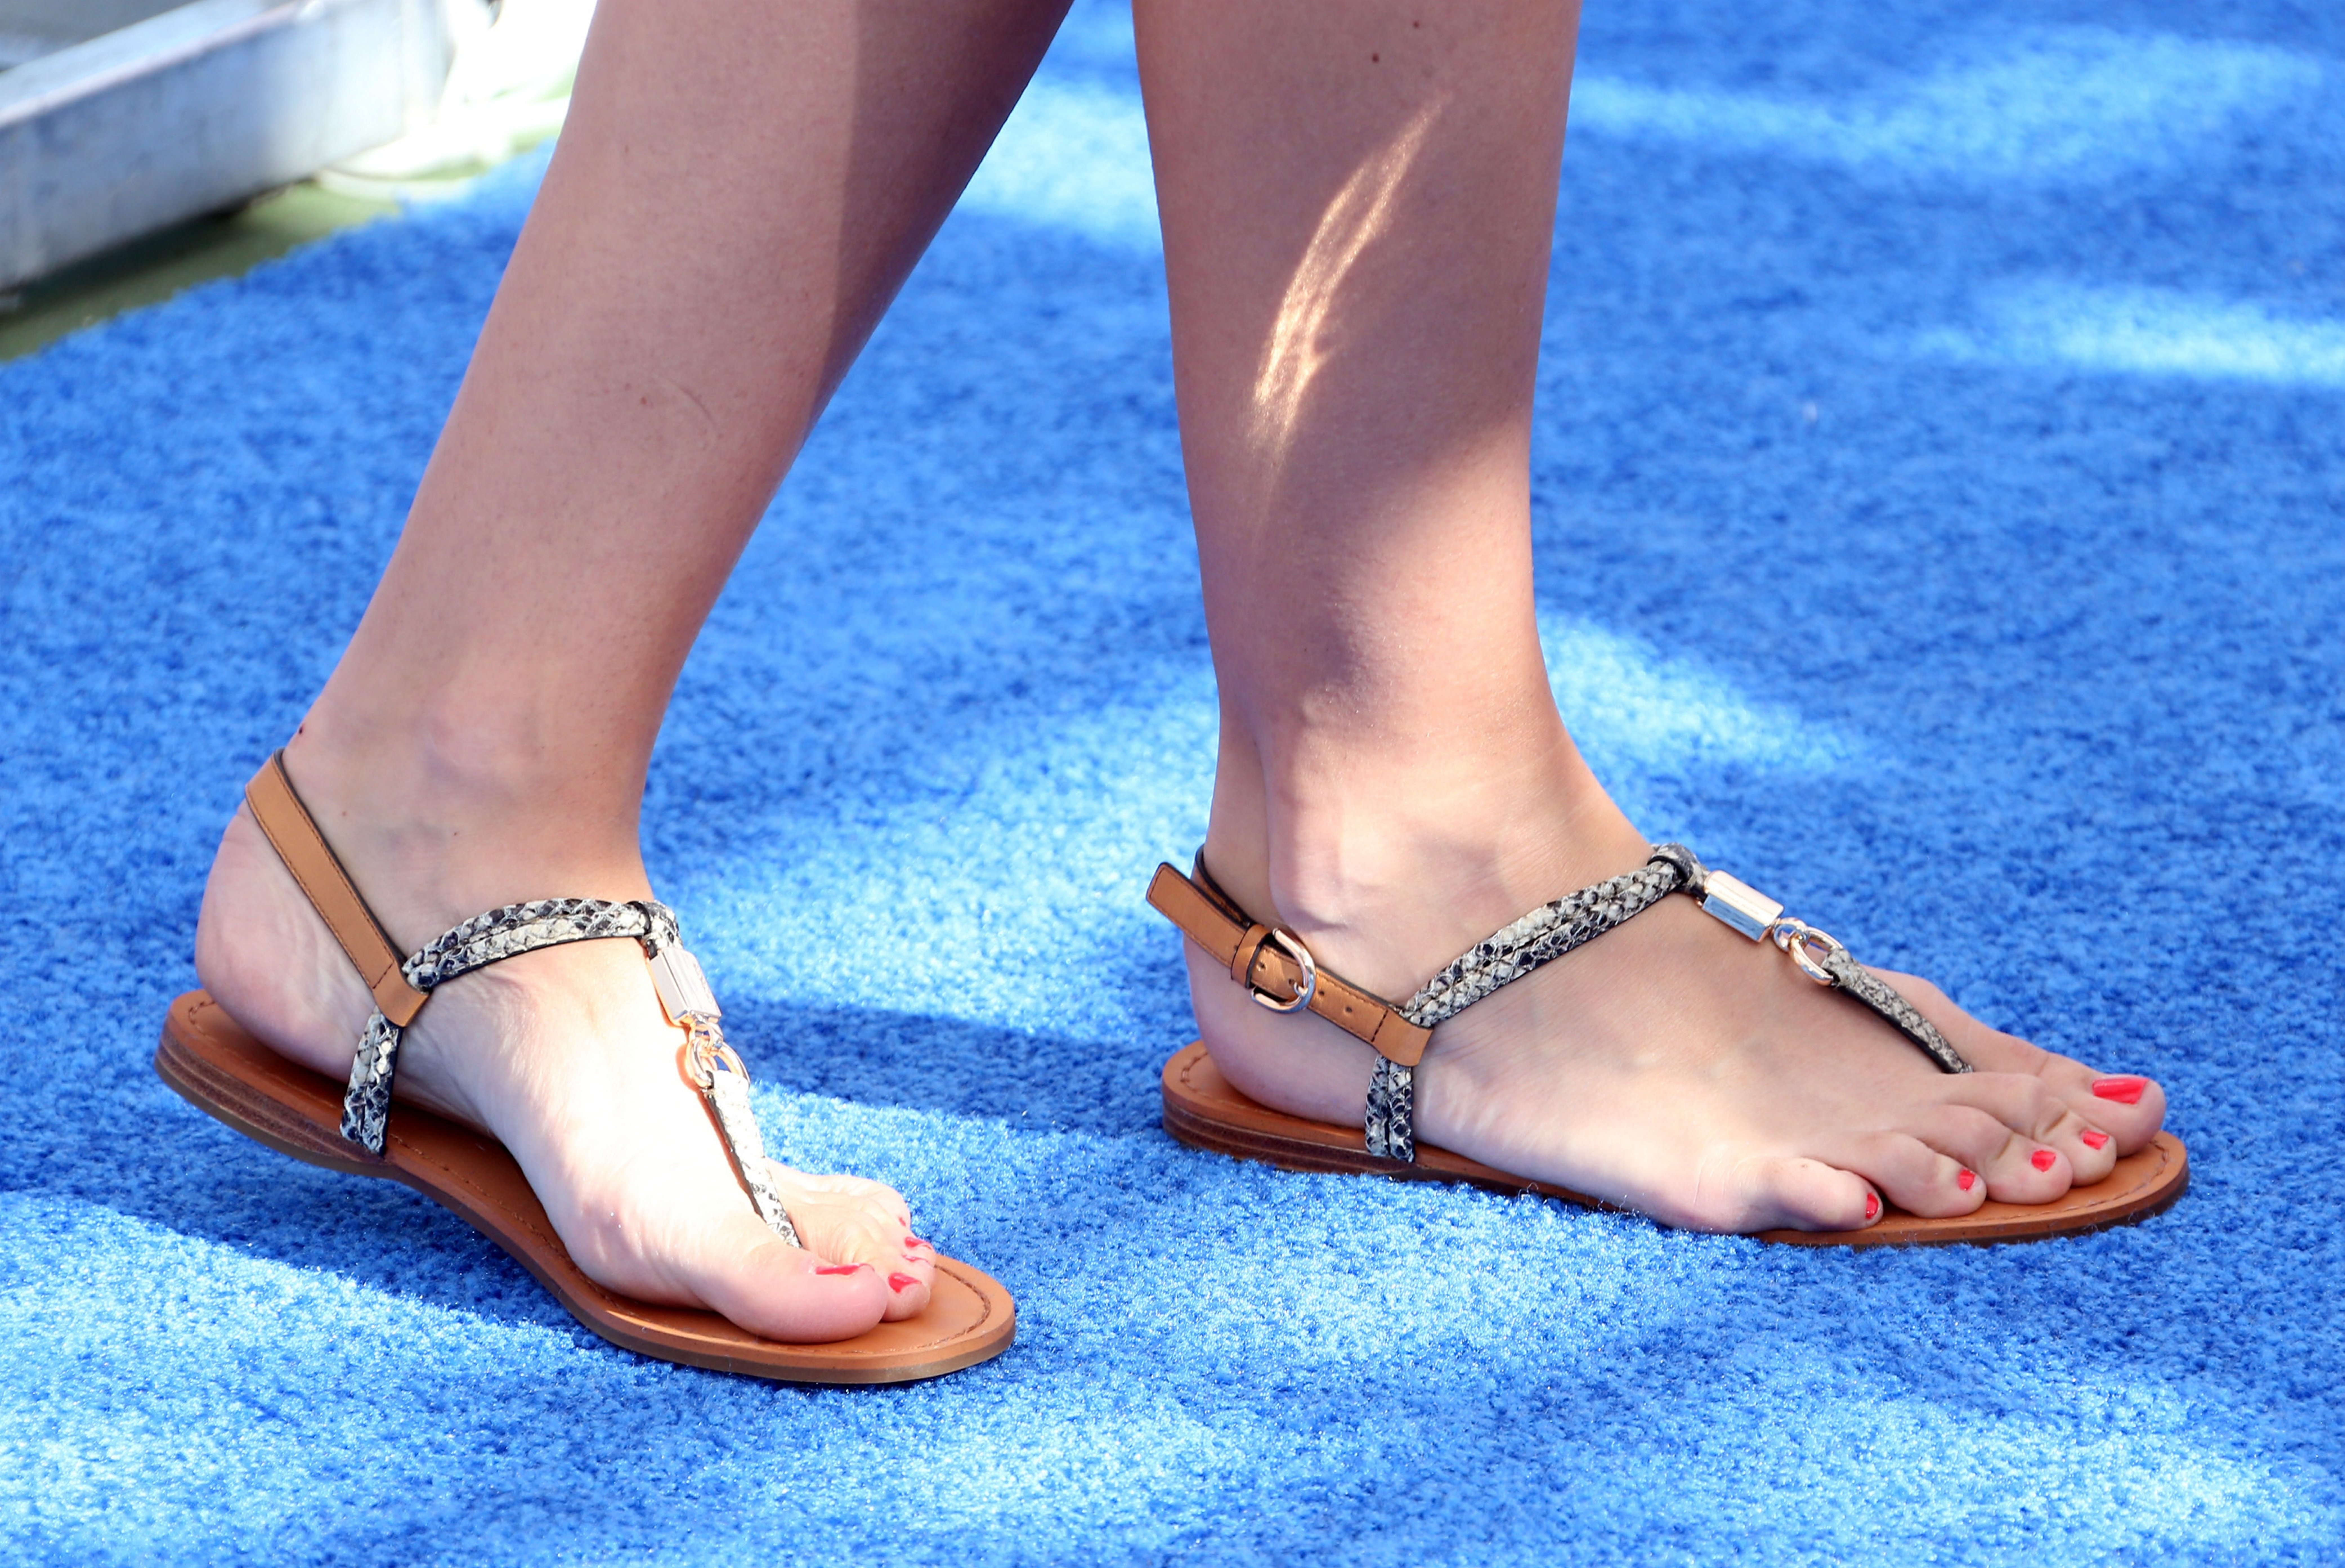 Warm weather invariably brings back the flip-flop flap – whether leather sandals that cover as little as rubber ones are appropriate for the workplace.